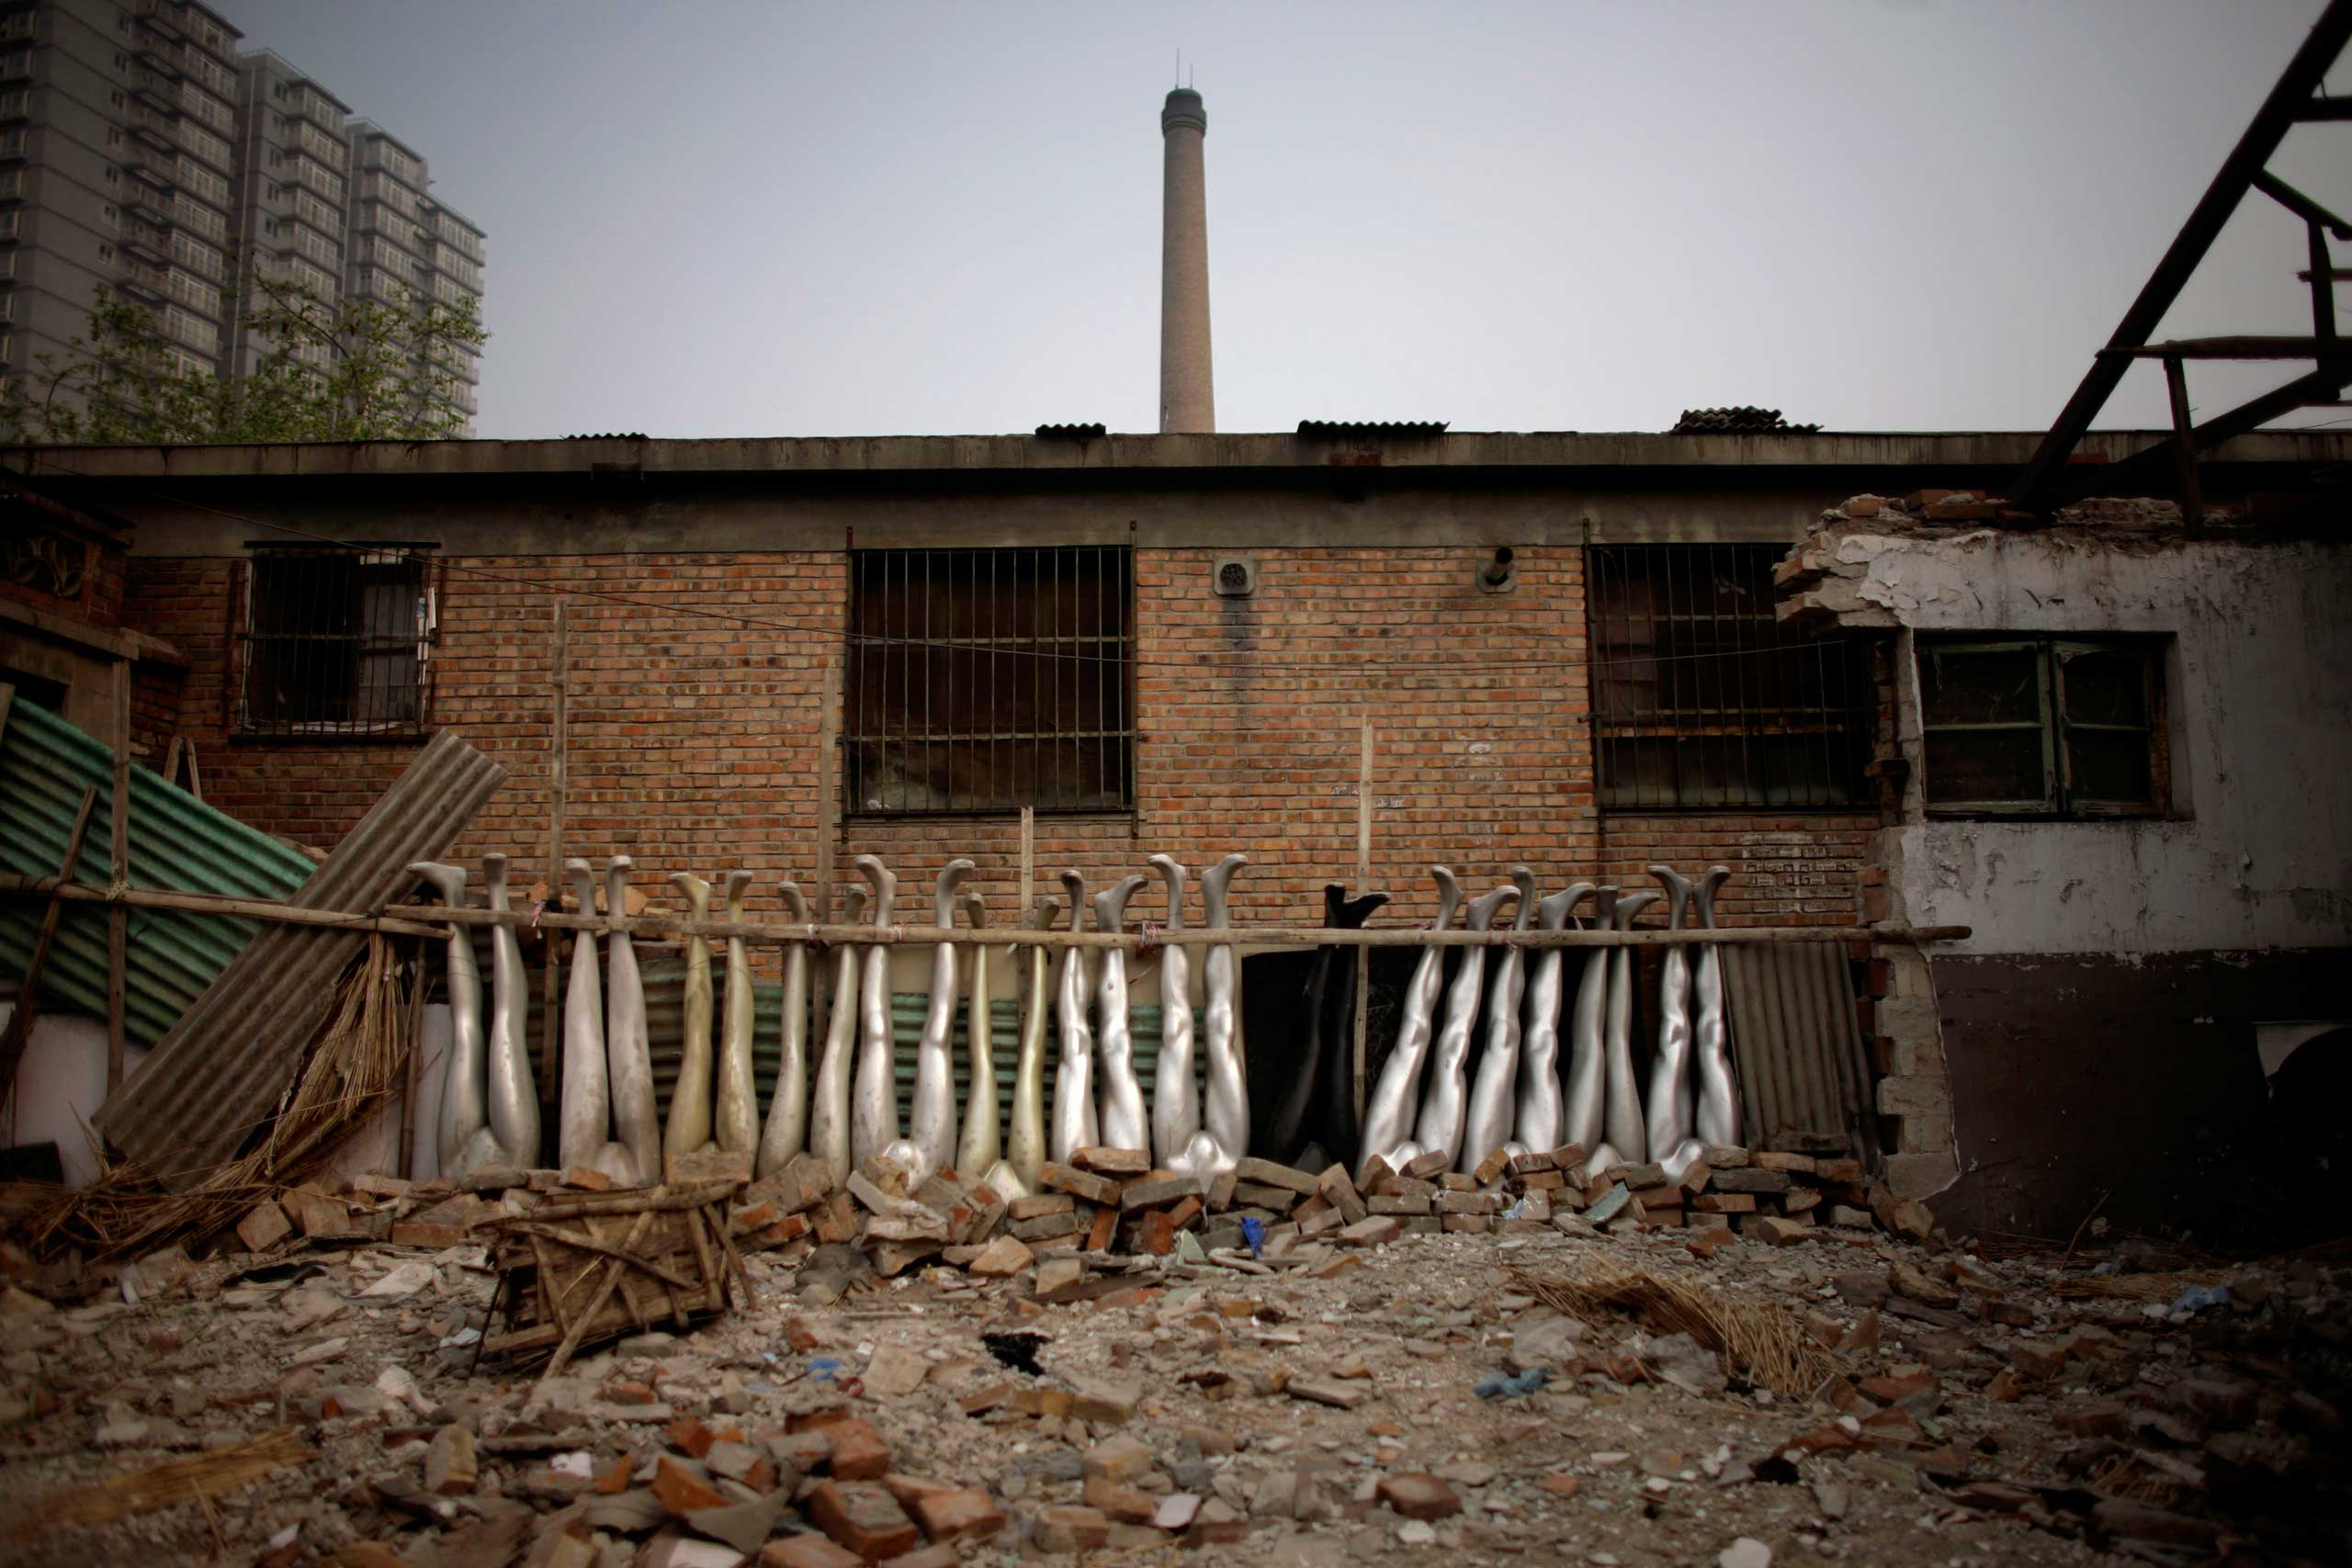 Mannequins legs lie amongst the rubble of a demolished house next to a construction site in Beijing.